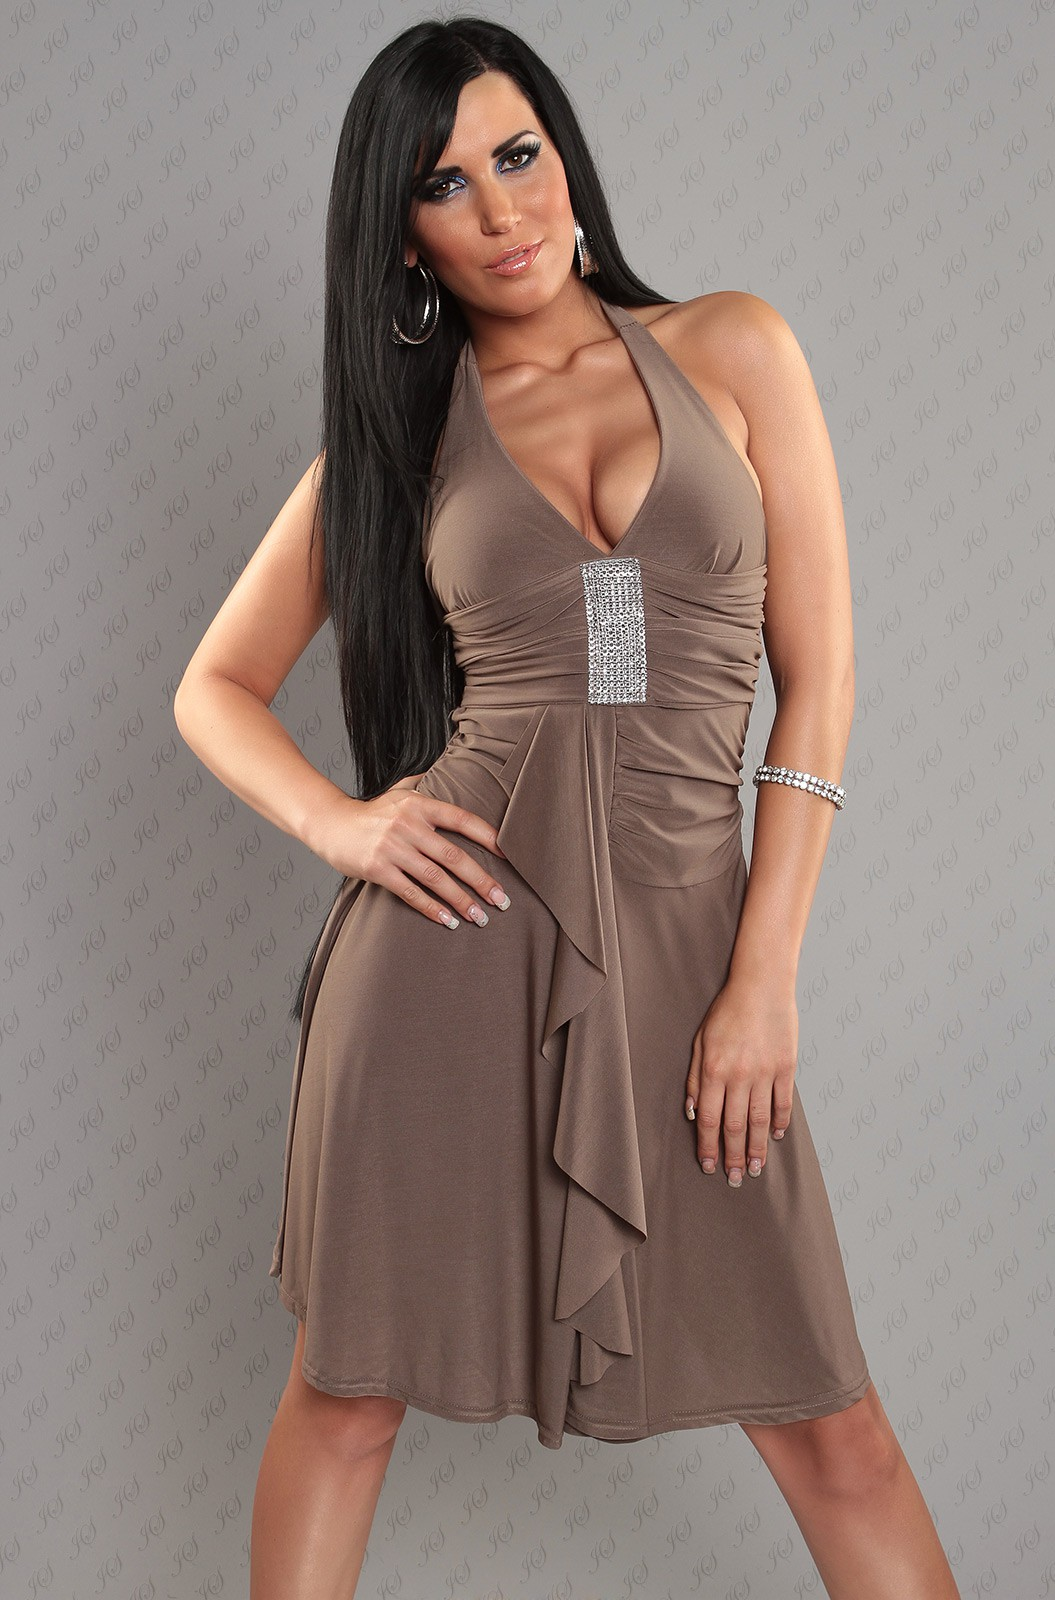 Beige Halter Rhinestone Accent Evening Dress